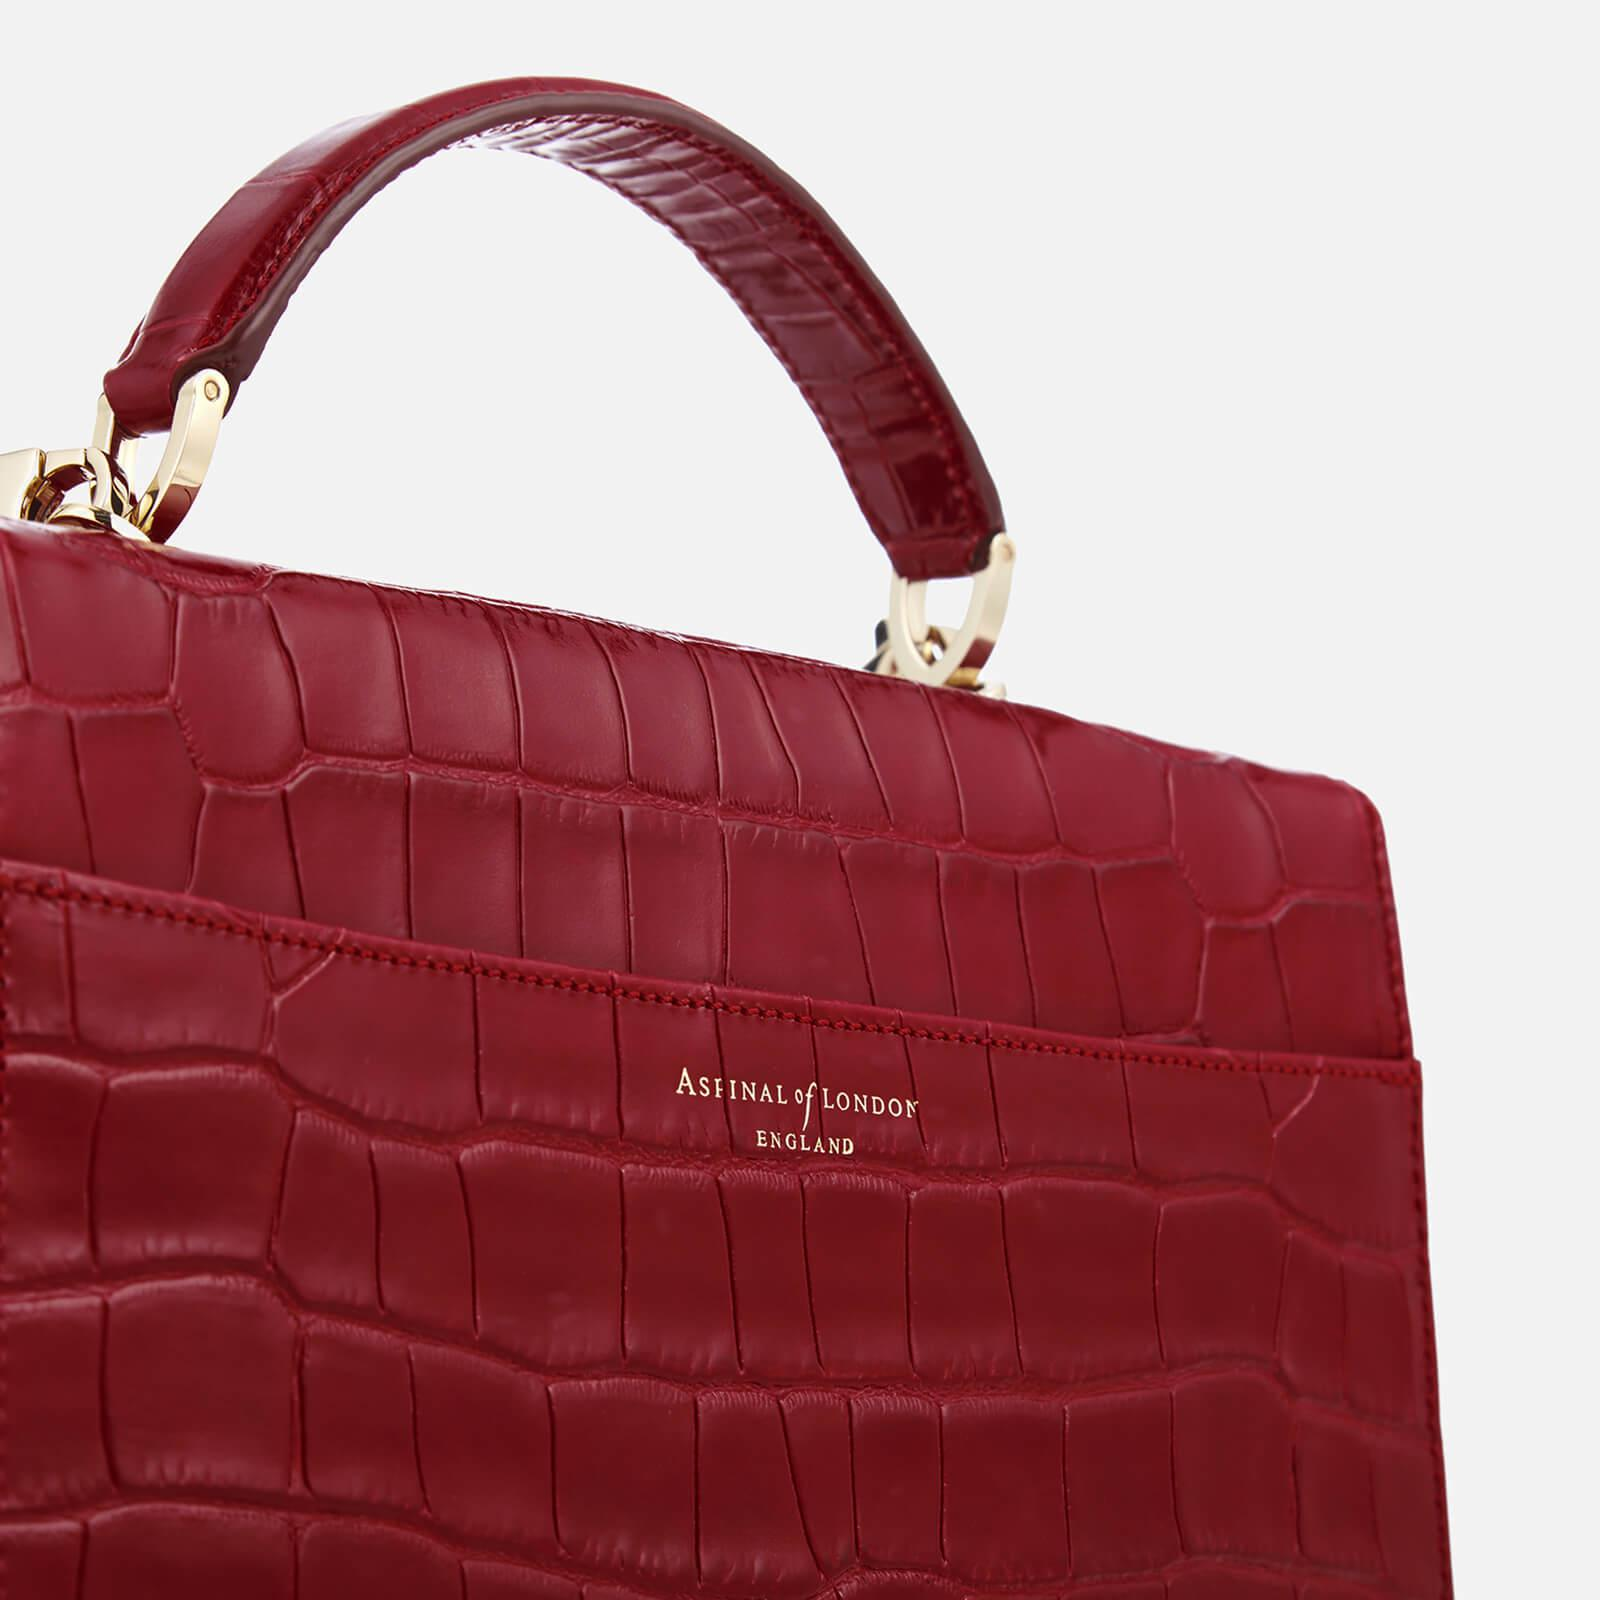 Aspinal of London Leather Mayfair Cross Body Bag in Red